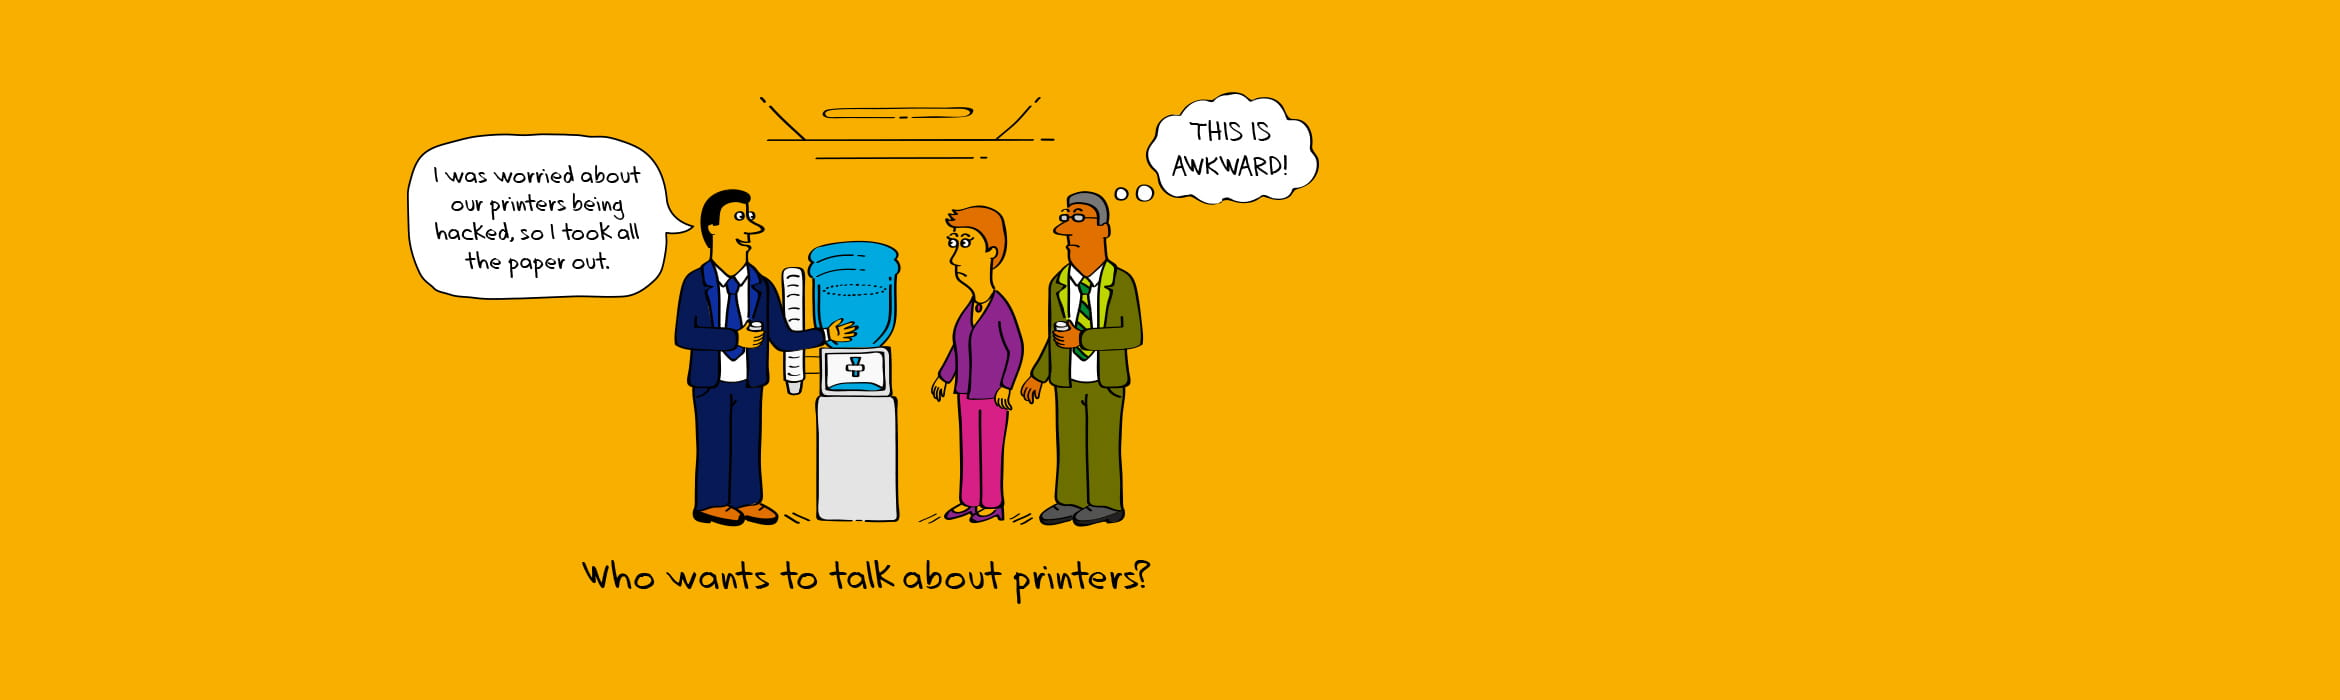 Illustration of an awkward print office situation